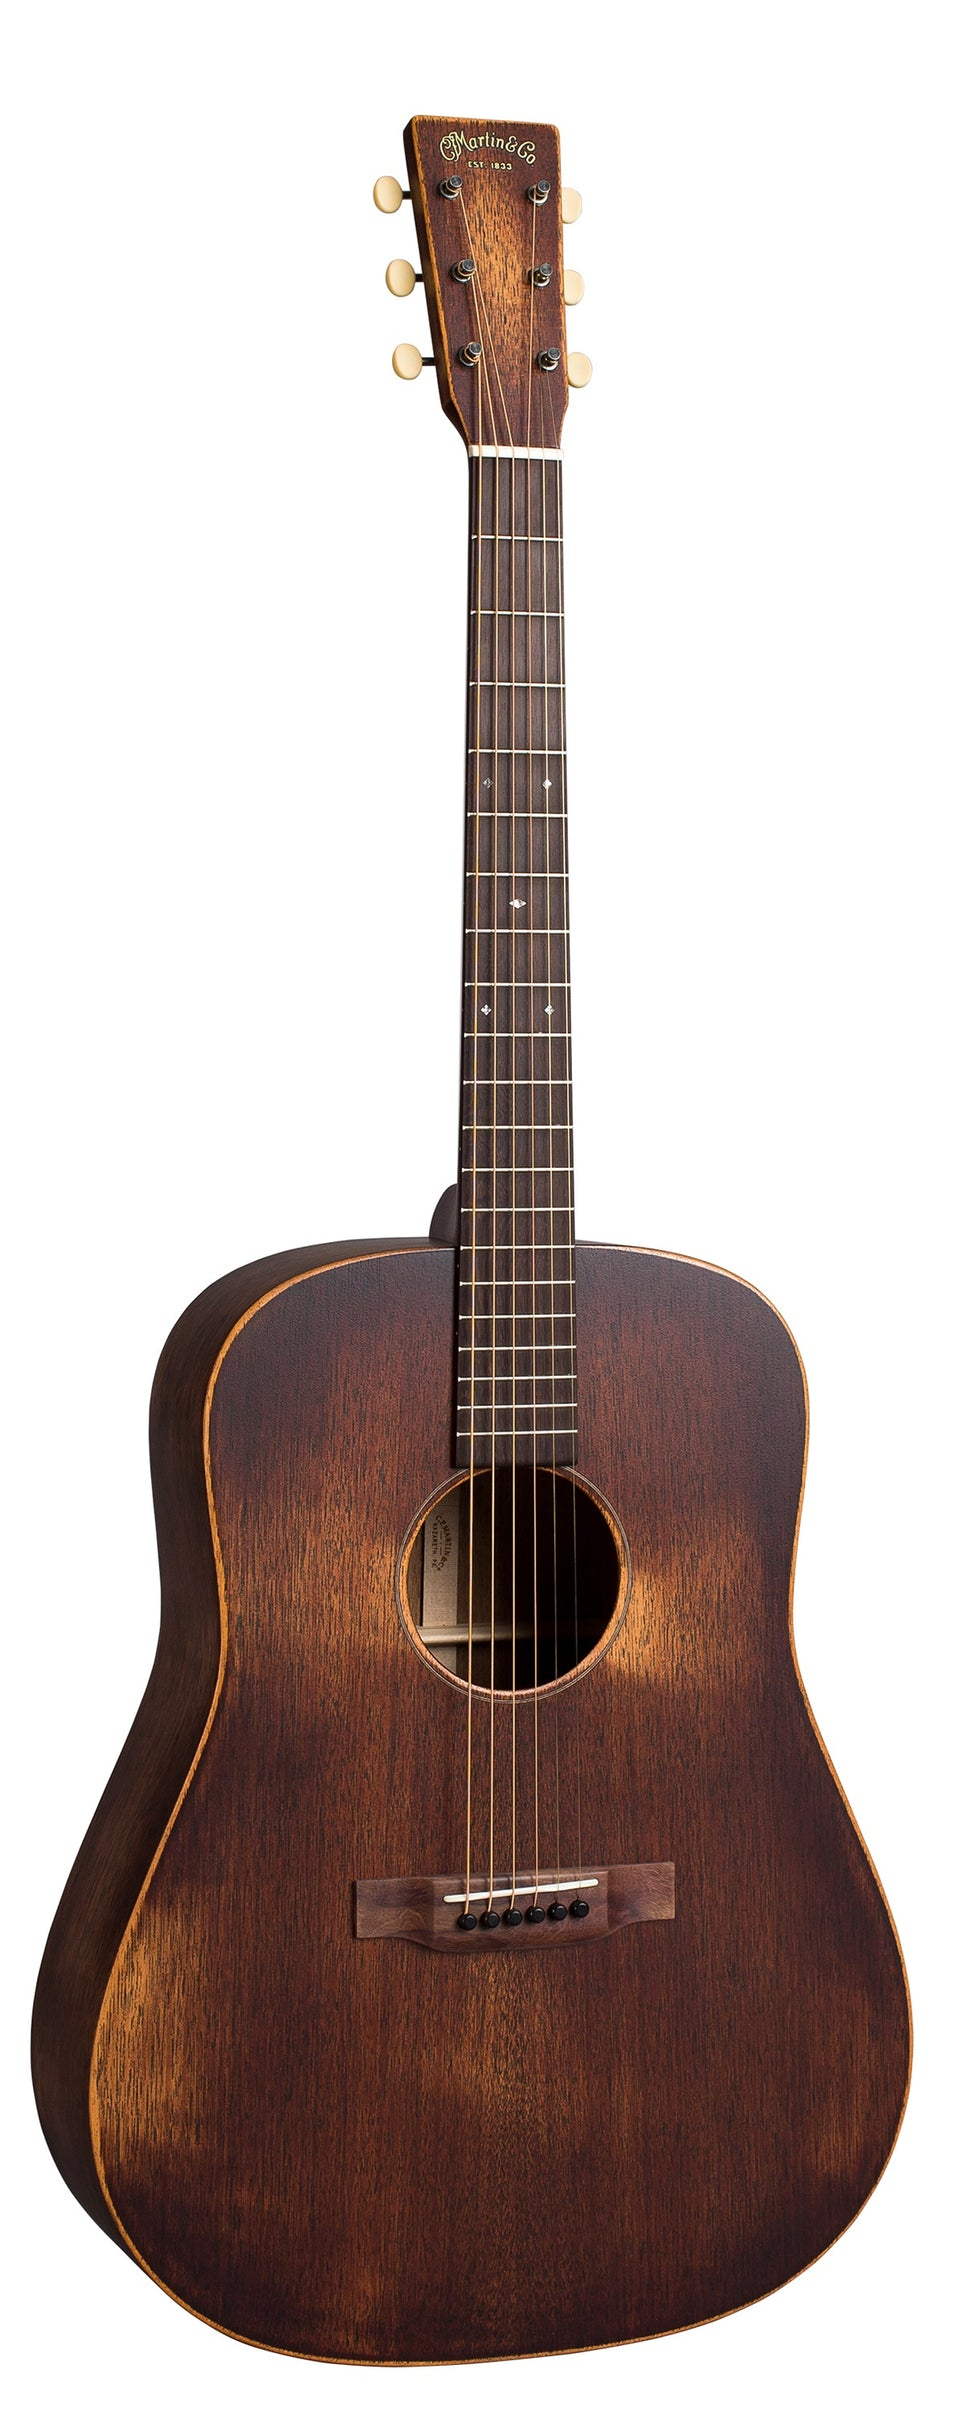 Martin D-15M StreetMaster Acoustic Guitar